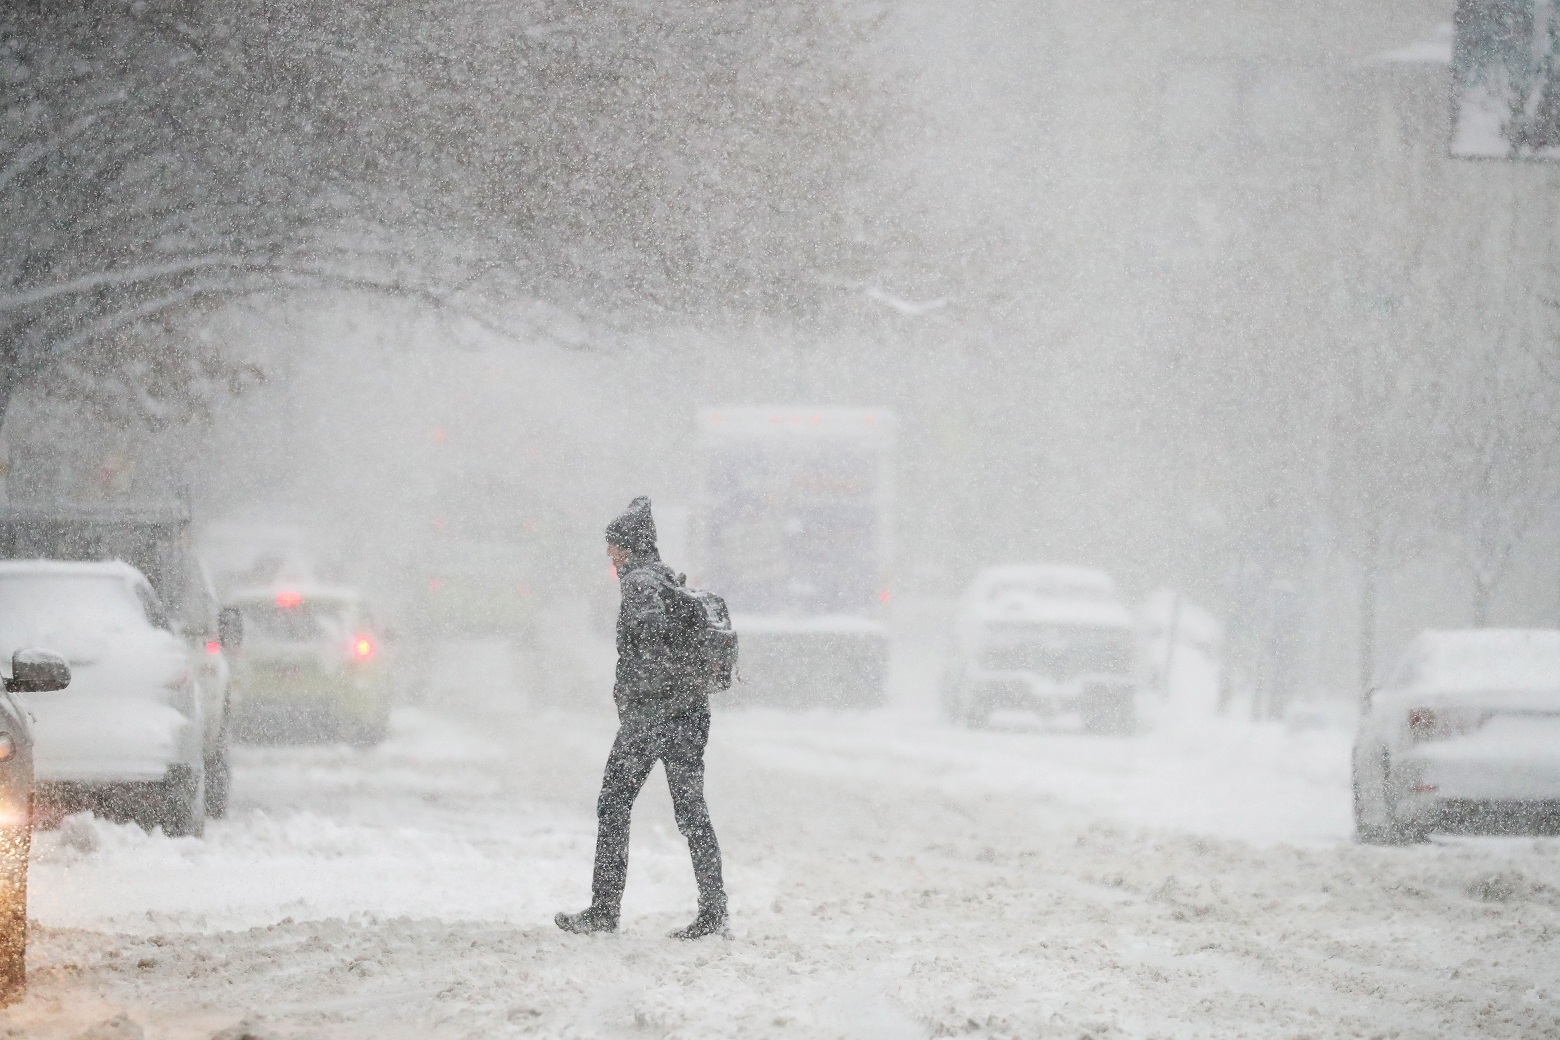 Winter Storm Niko: Flights cancelled